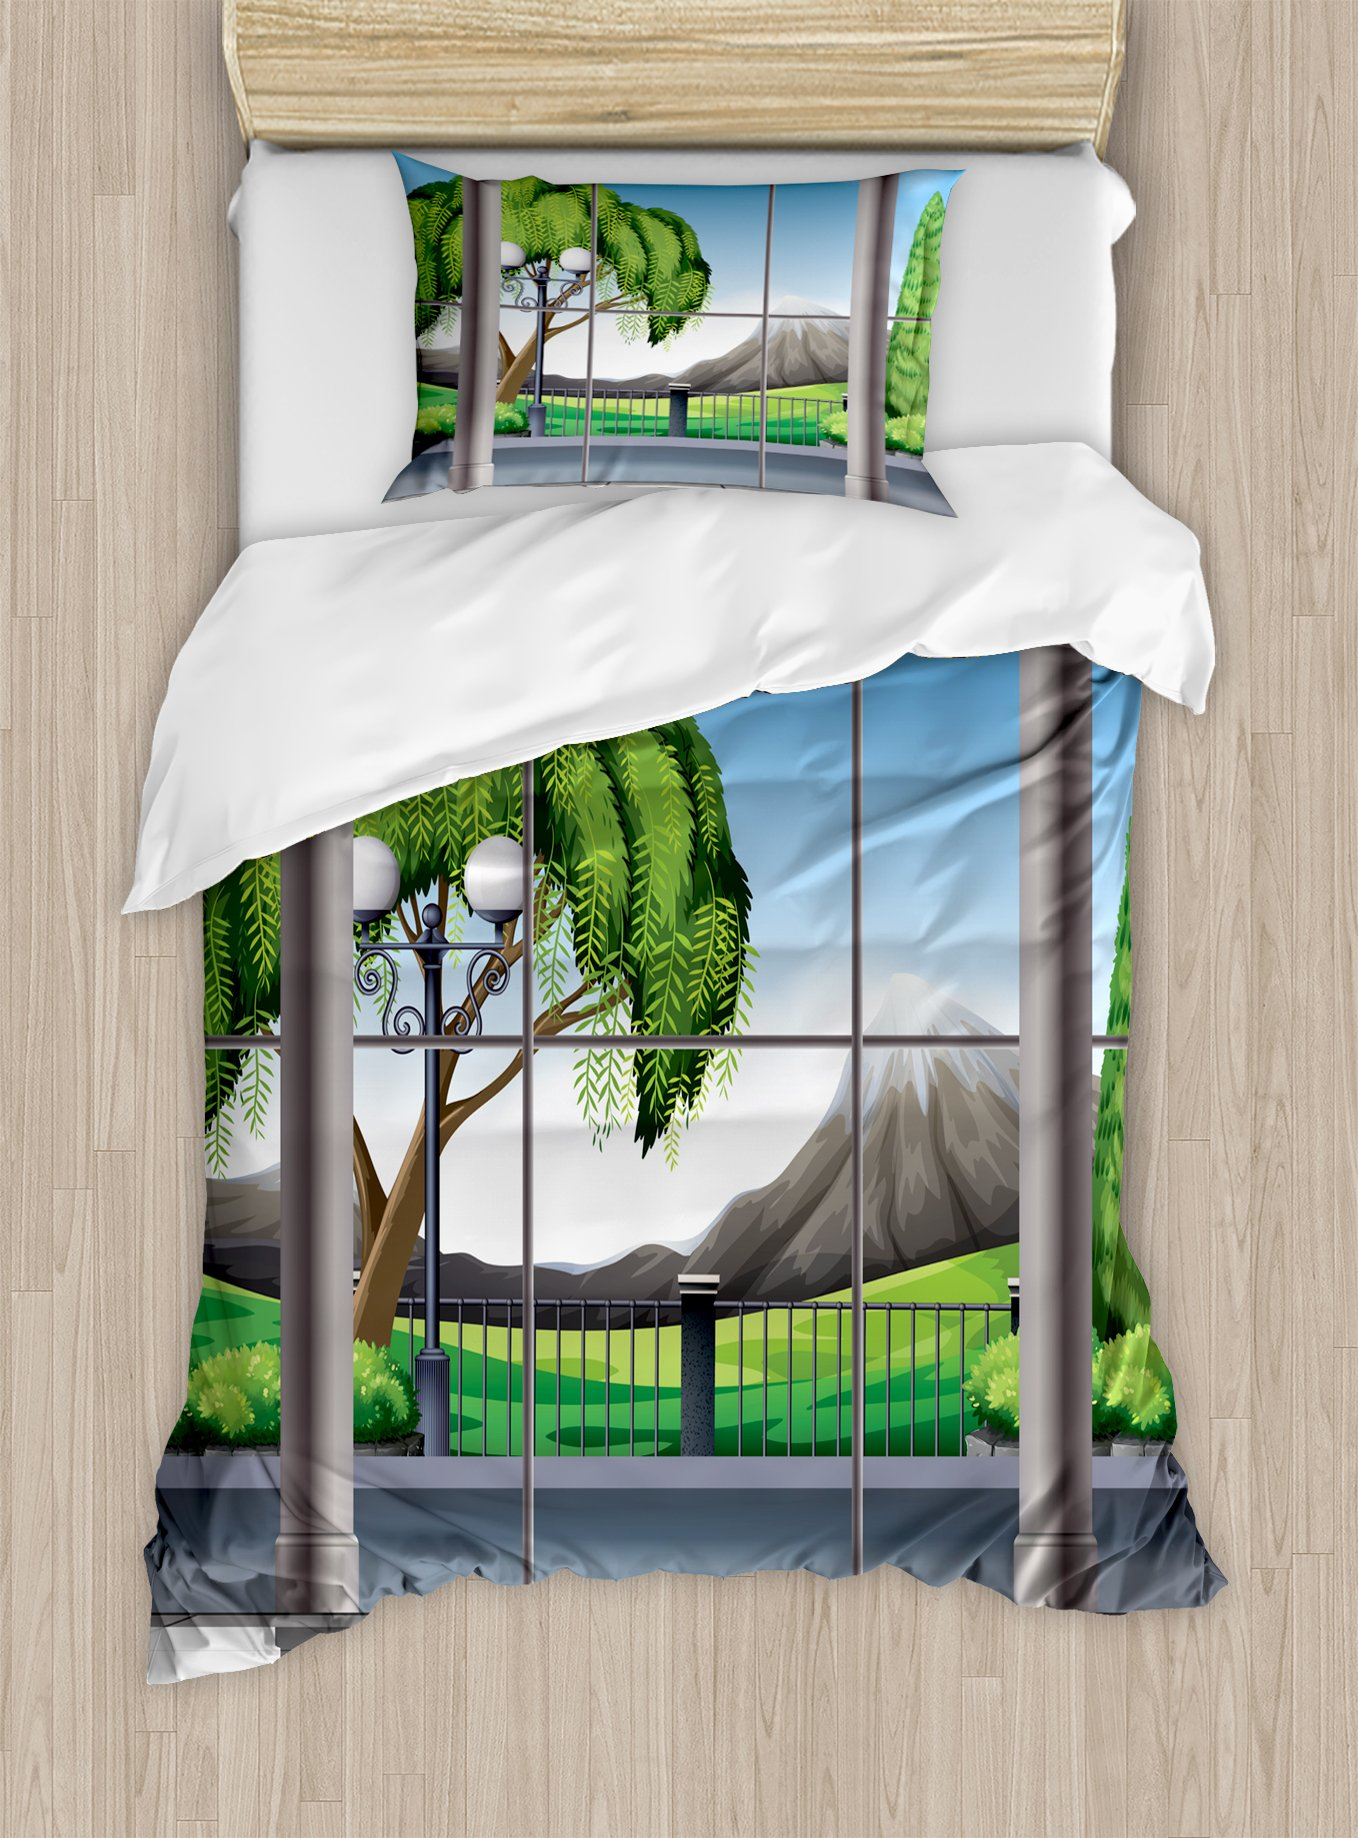 Ambesonne Landscape Duvet Cover Set Twin Size, Room with Window View of Mountains and Field Landscape Contemporary Architecture, Decorative 2 Piece Bedding Set with 1 Pillow Sham, Grey Green